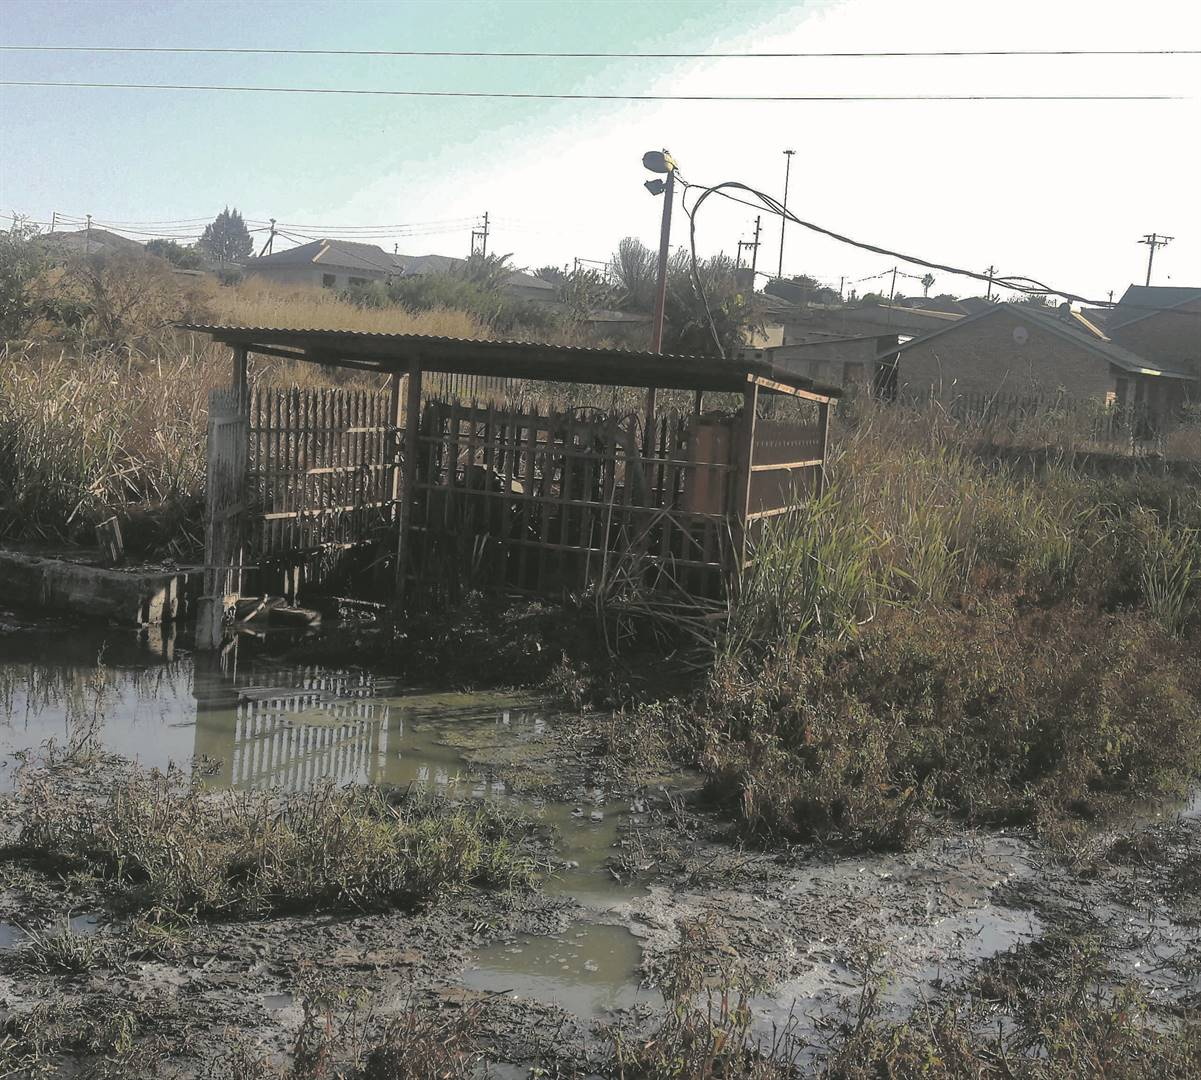 The Thaba Chweu municipality in Mpumalanga is facing a variety of problems, including ineffective sewerage systems, as shown in this picture of an overflowing sewage plant Picture: Sizwe sama Yende